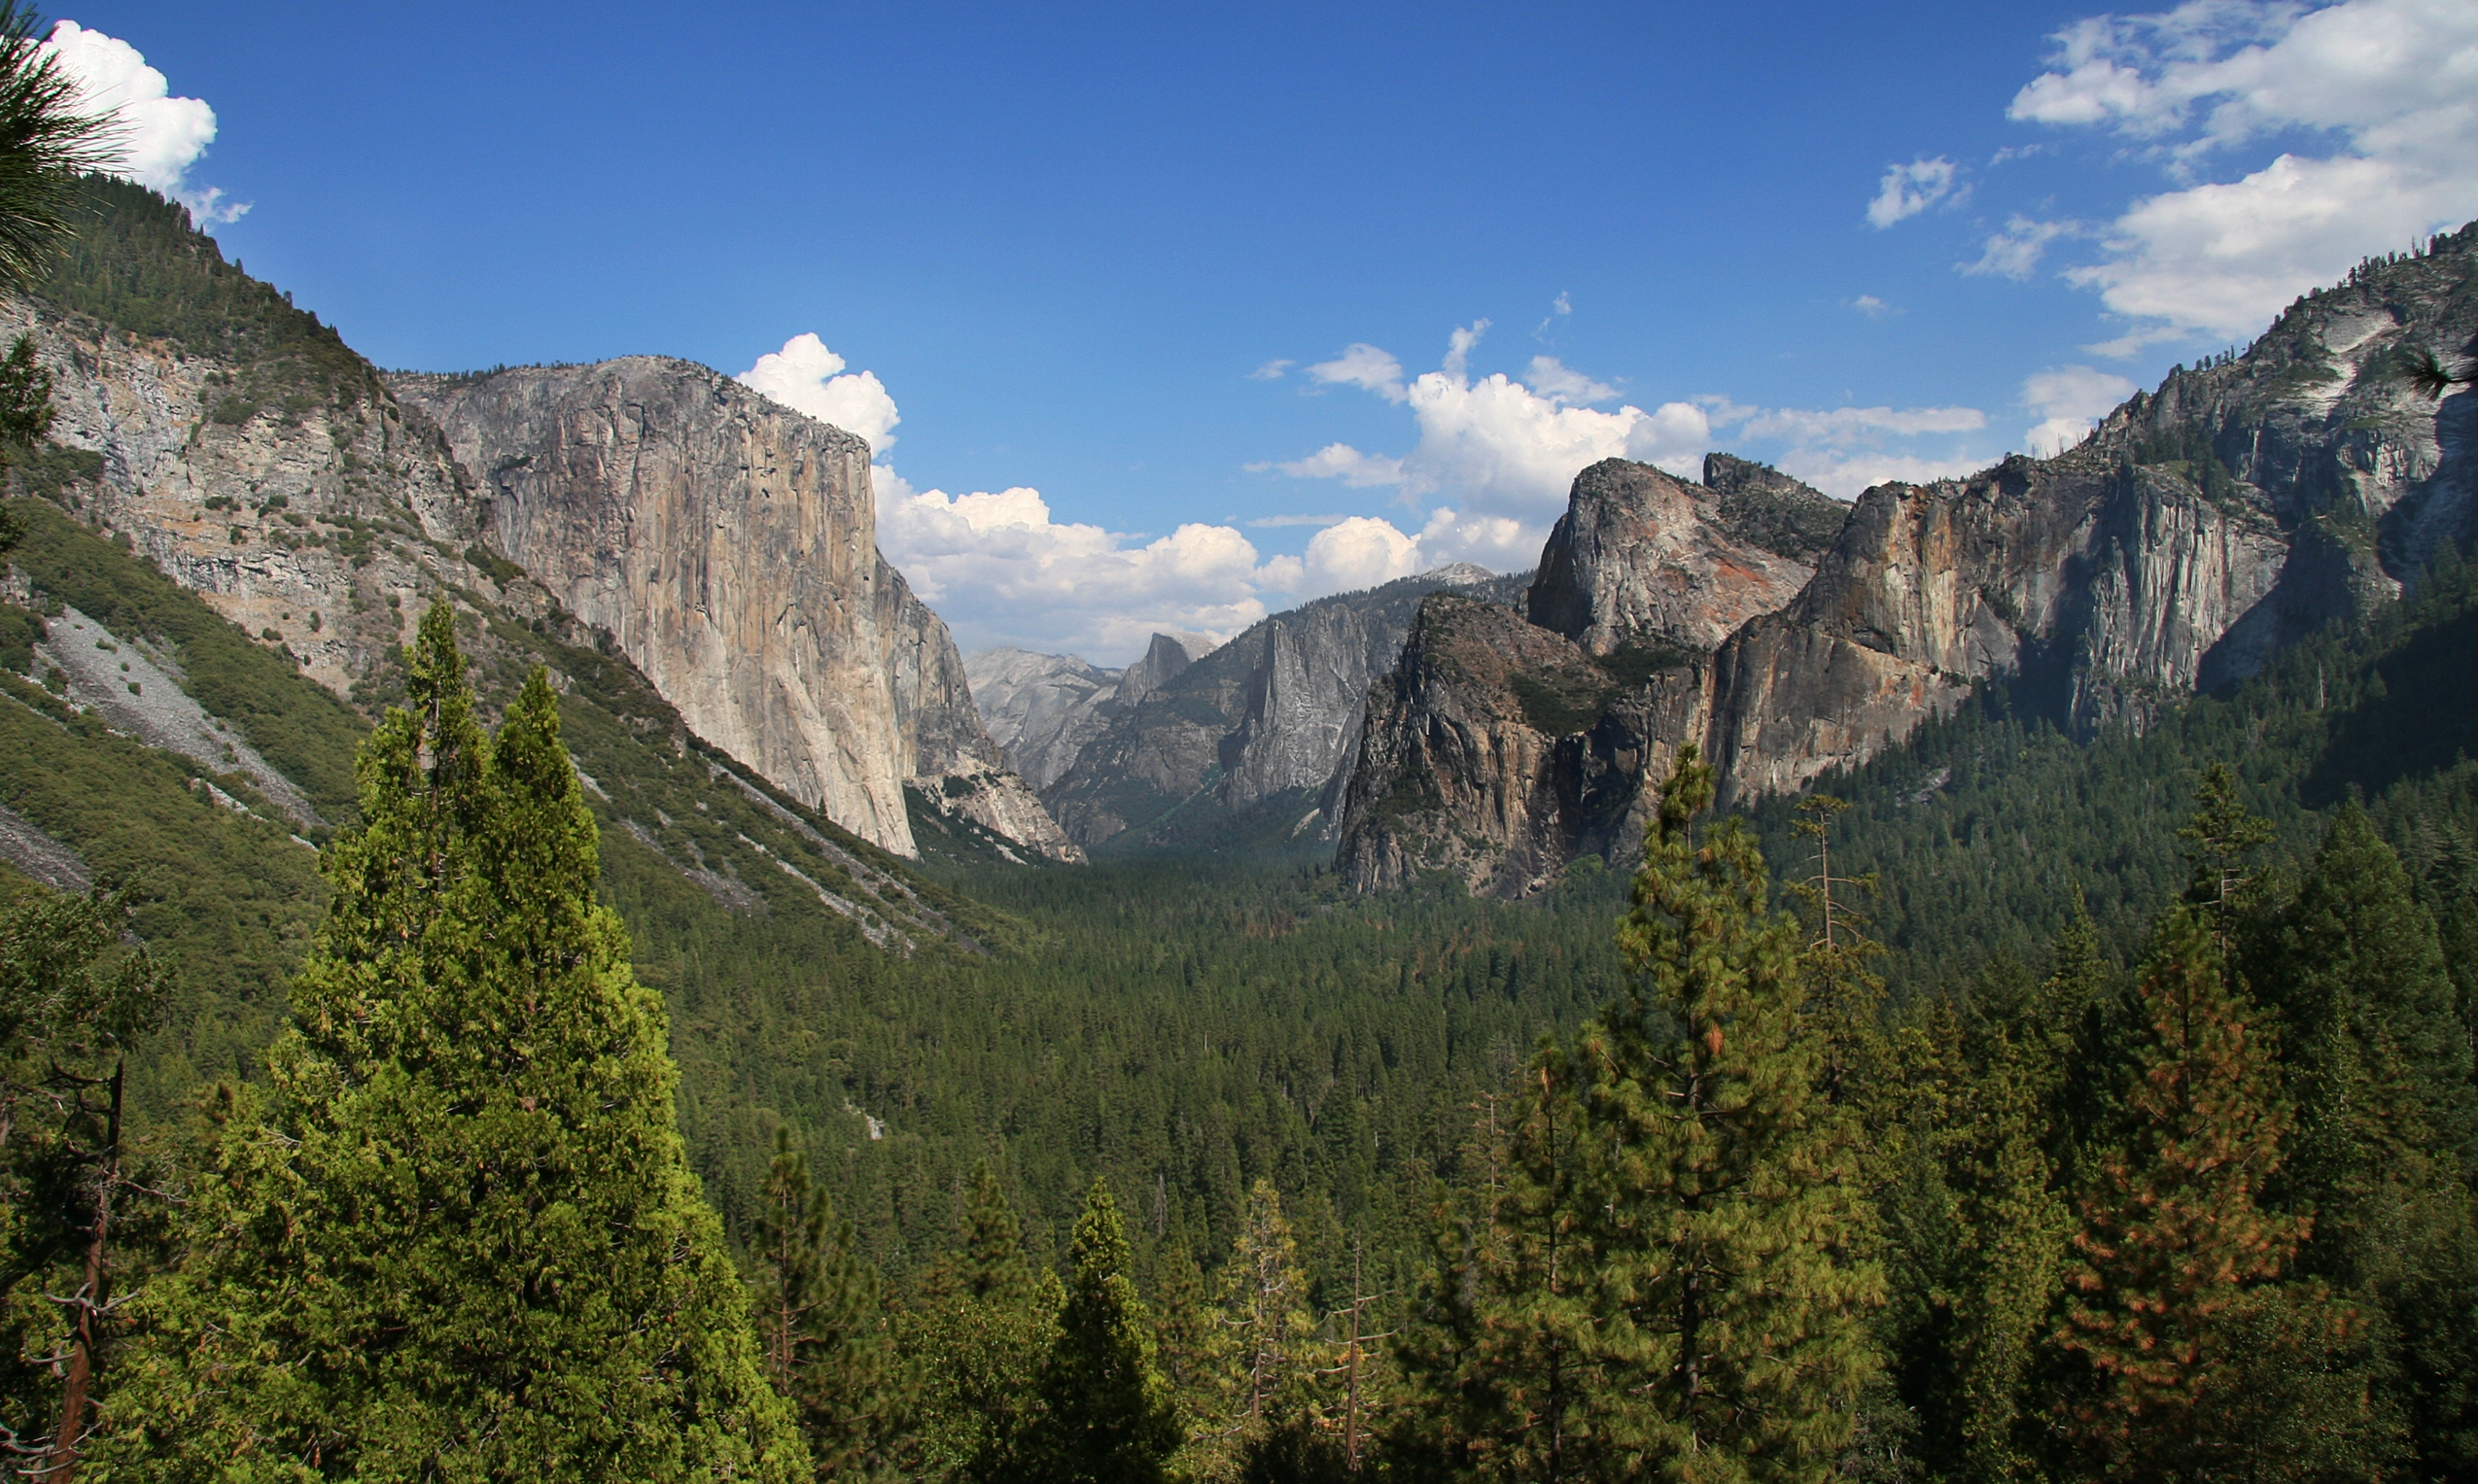 Essay about yosemite national park